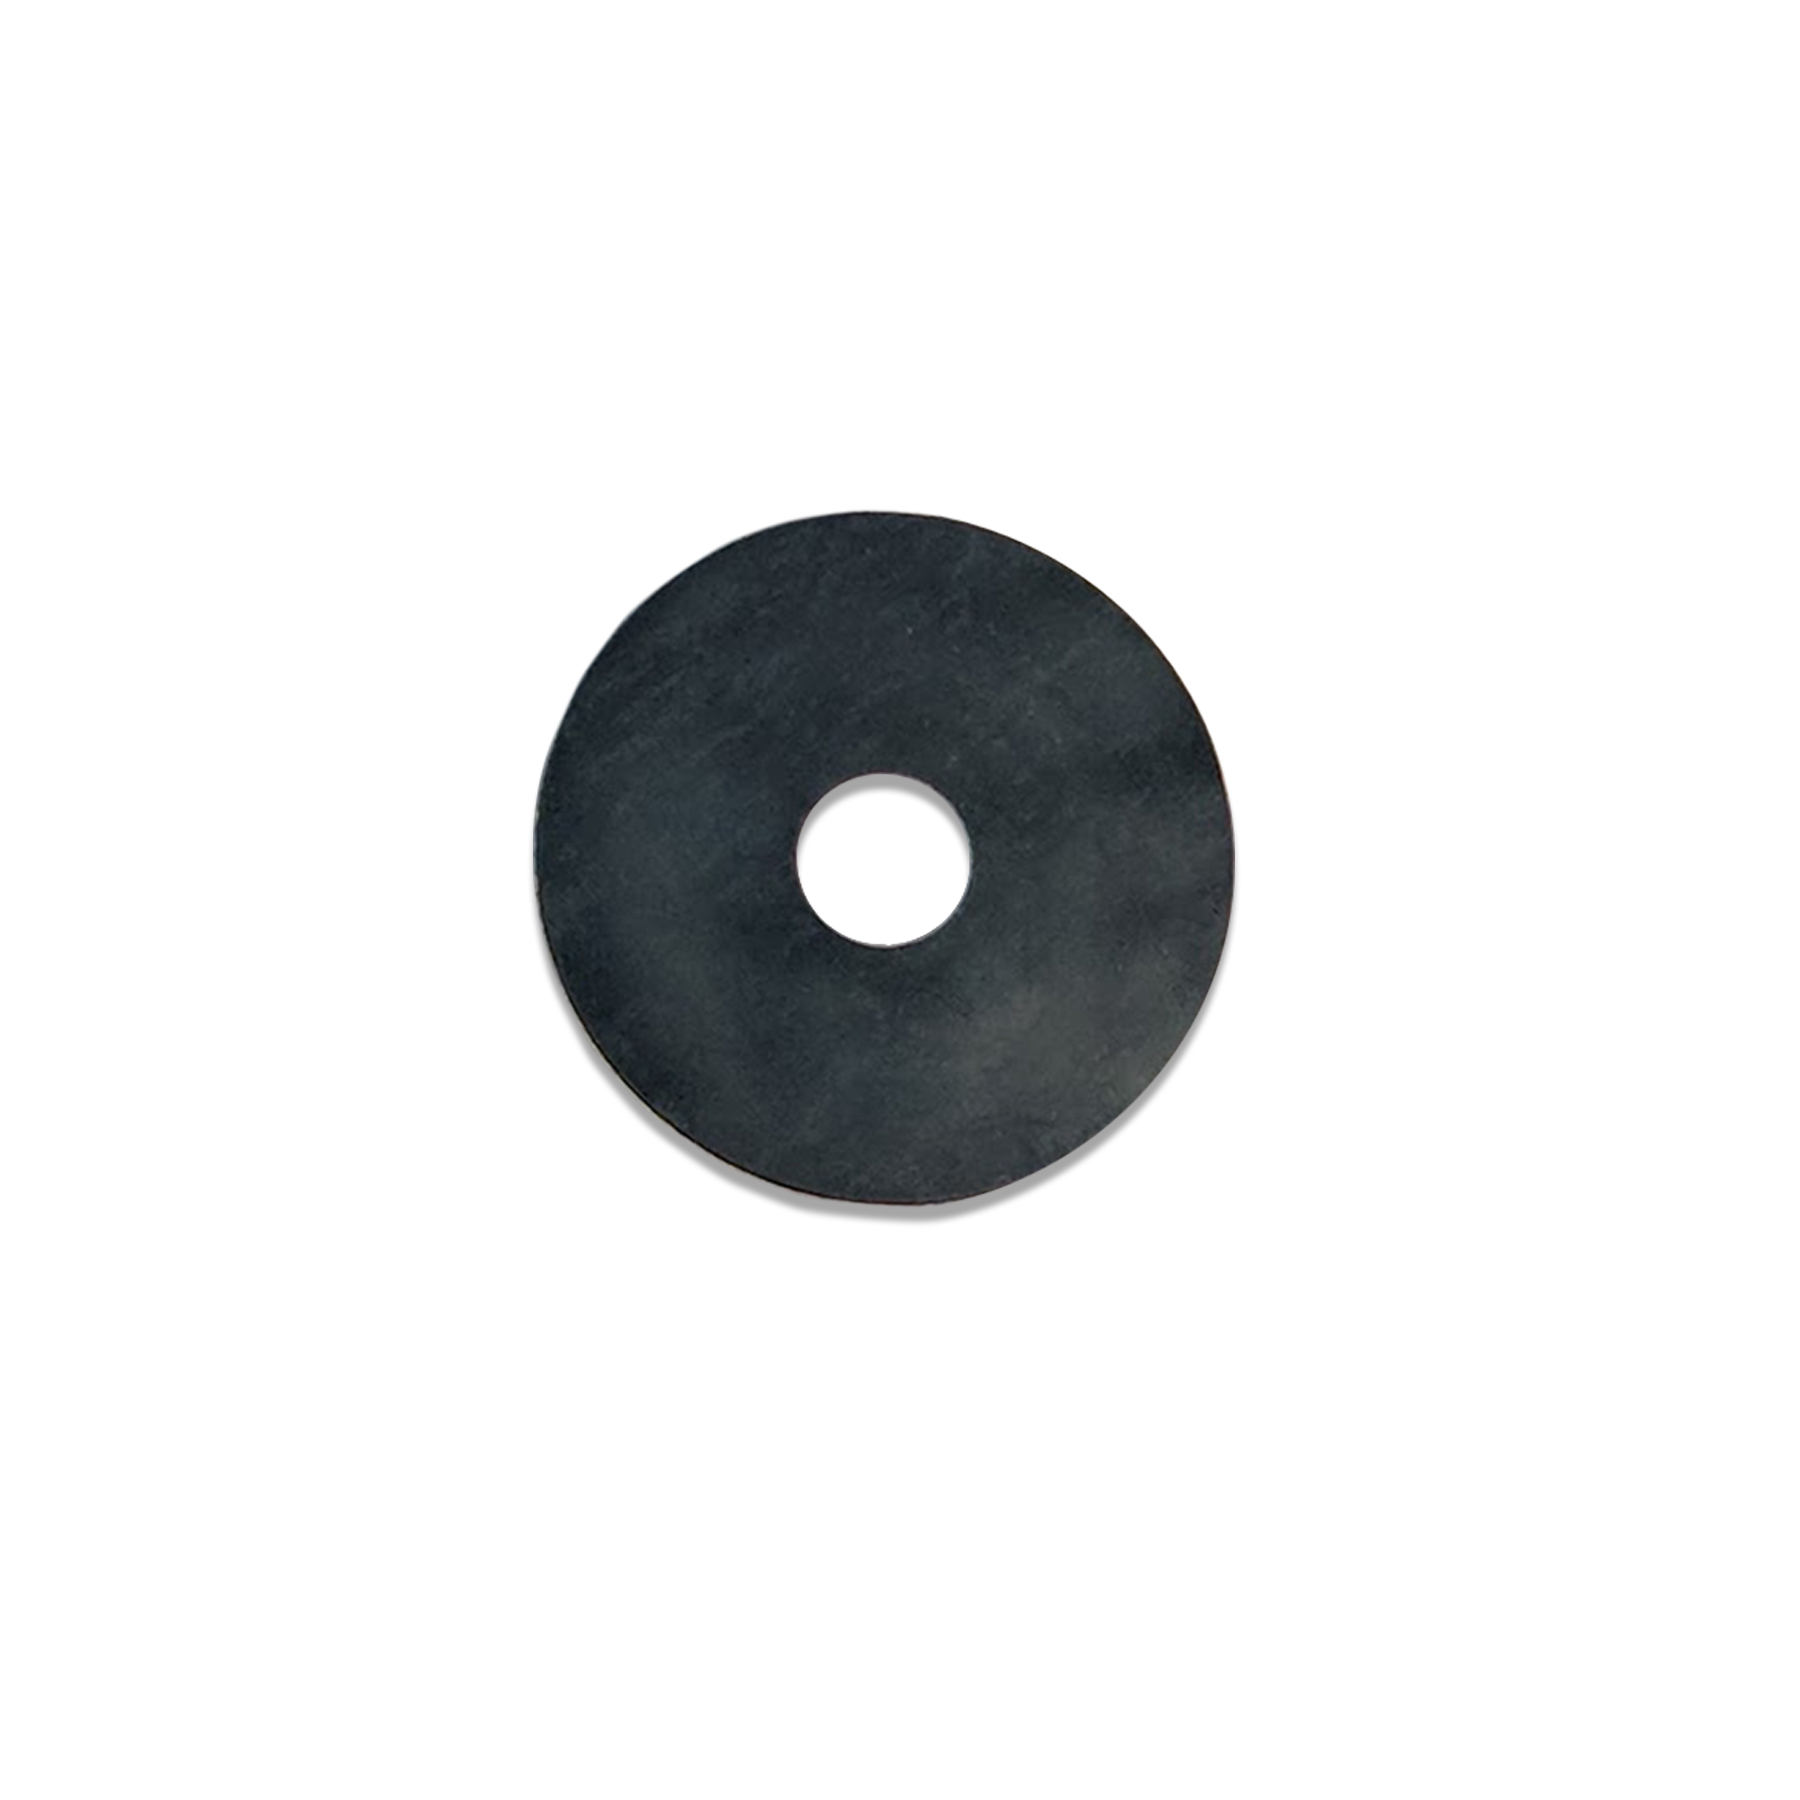 Rubber Gasket w/Adhesive 1 x 4